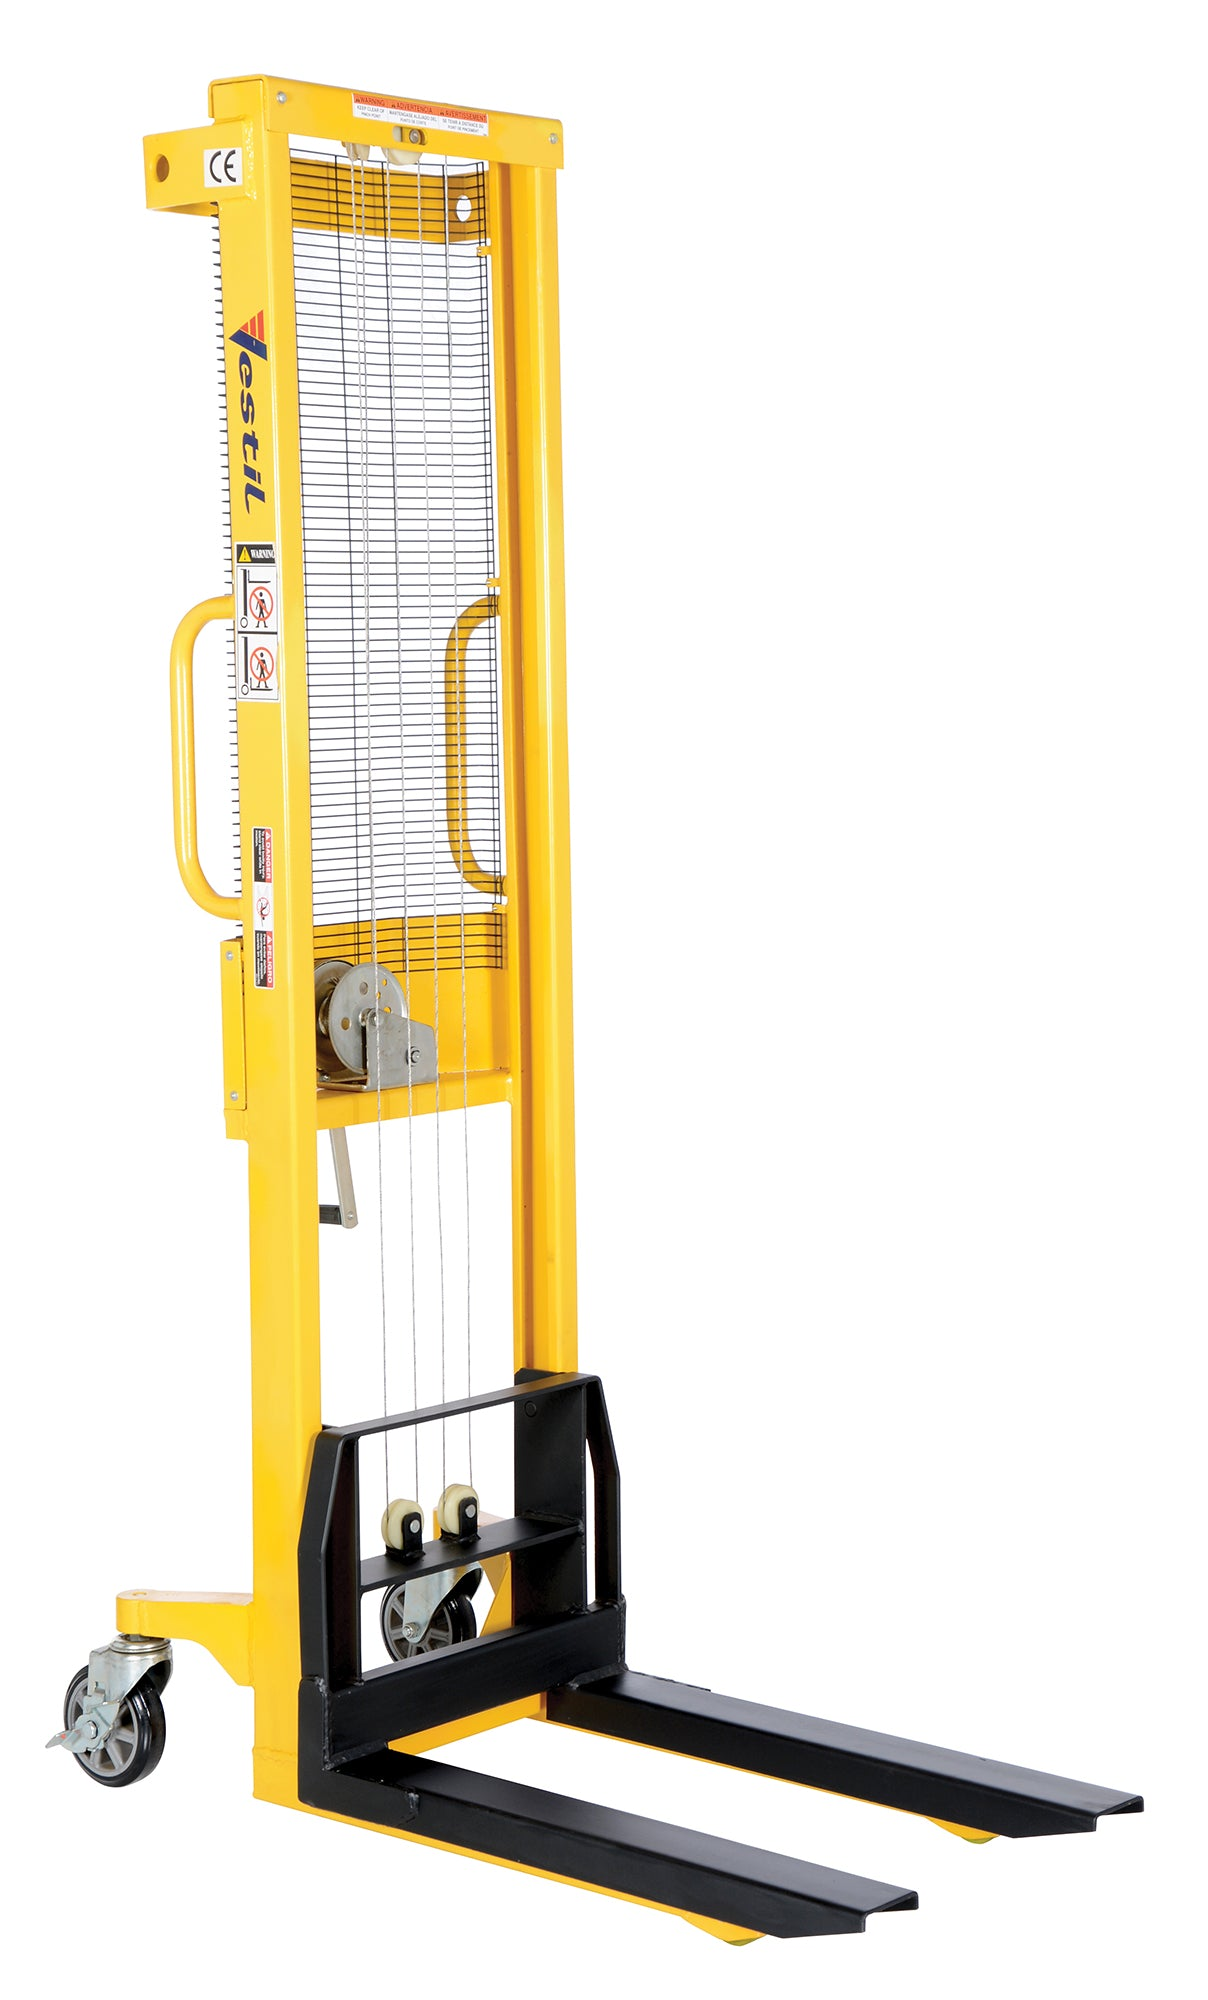 ... Manual Hand Winch Stackers - Forklift Training Safety Products ...